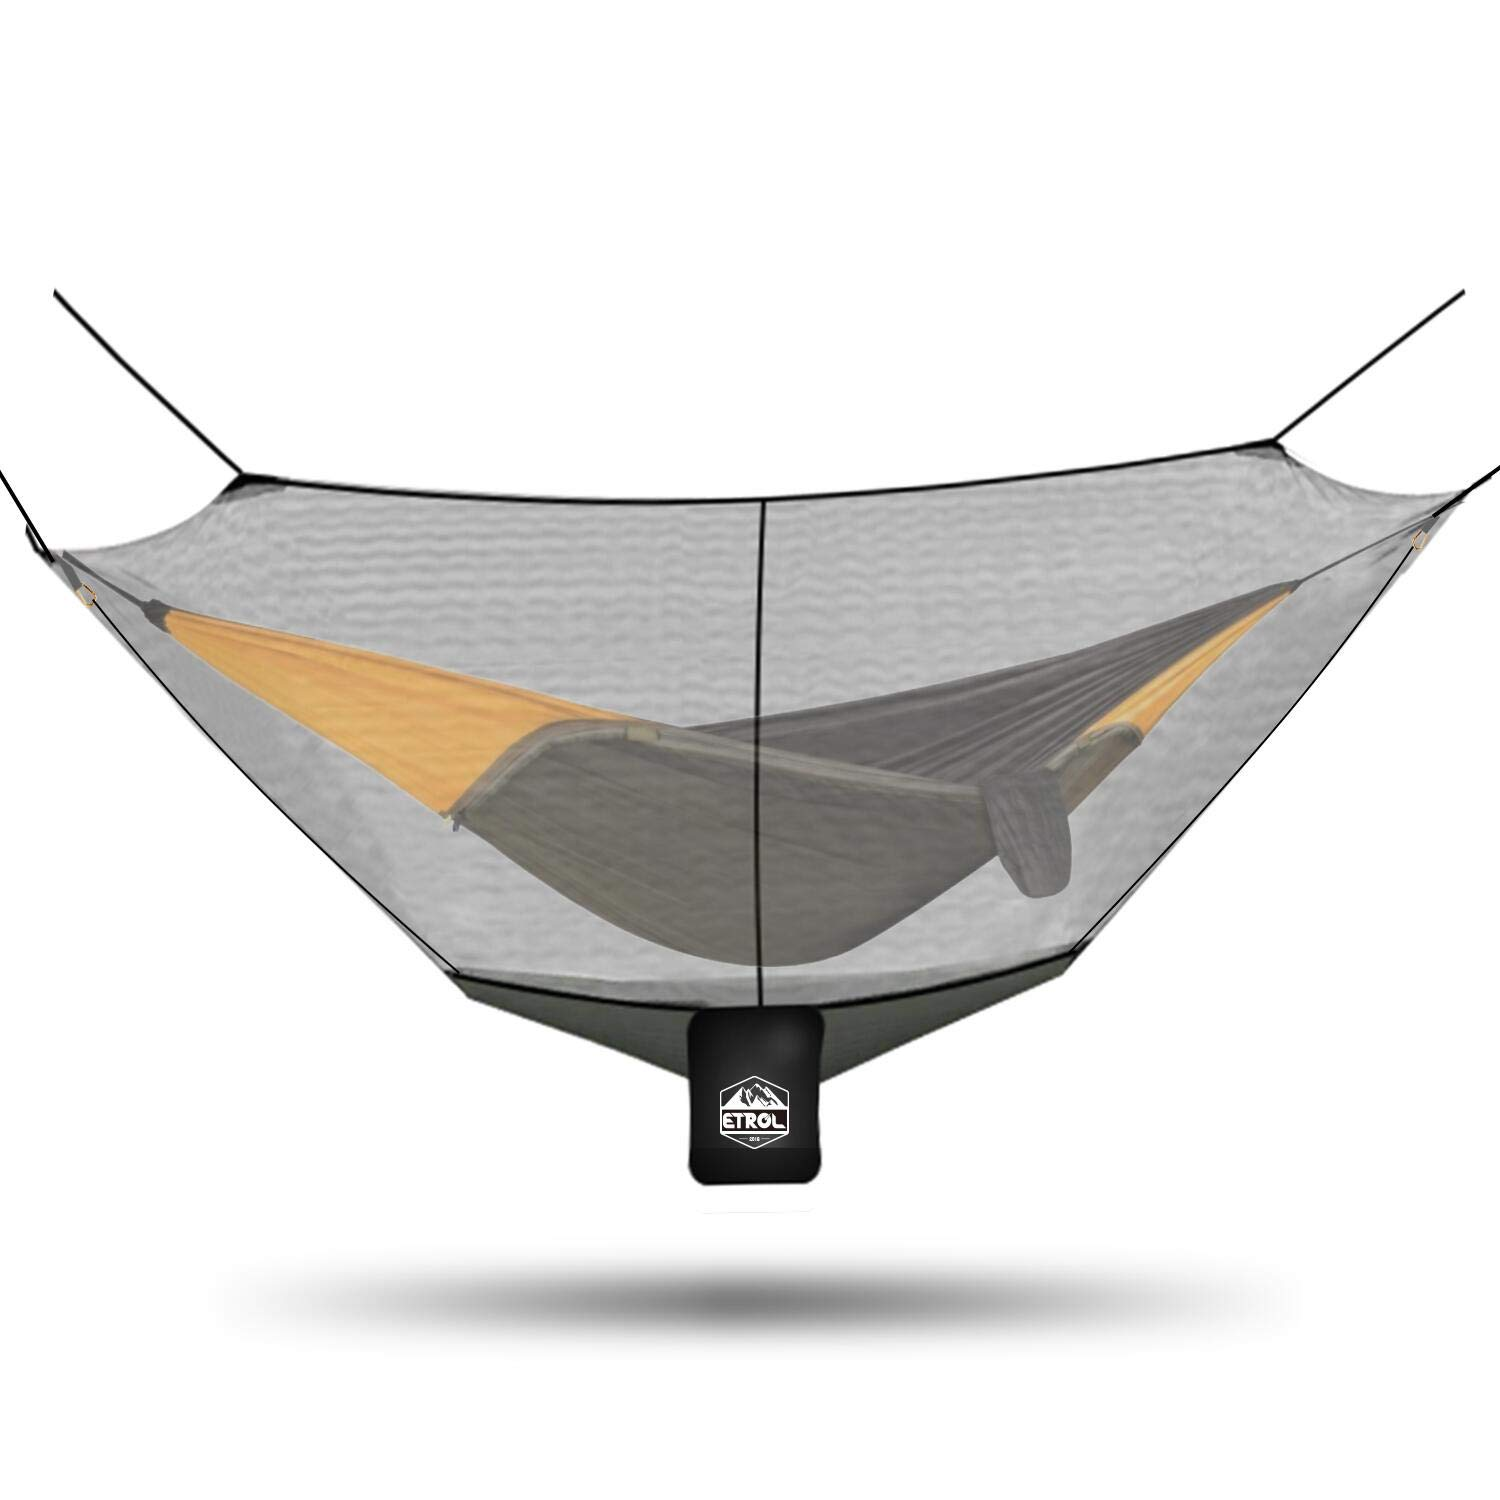 ETROL Hammock Mosquito Net, Universal Polyester Bug Mesh Net, Easy Setup Anti – Mosquitos and Insects with 360 Protection for Health and Safety, Keep in Peace, Fits All Hammocks, 10FT